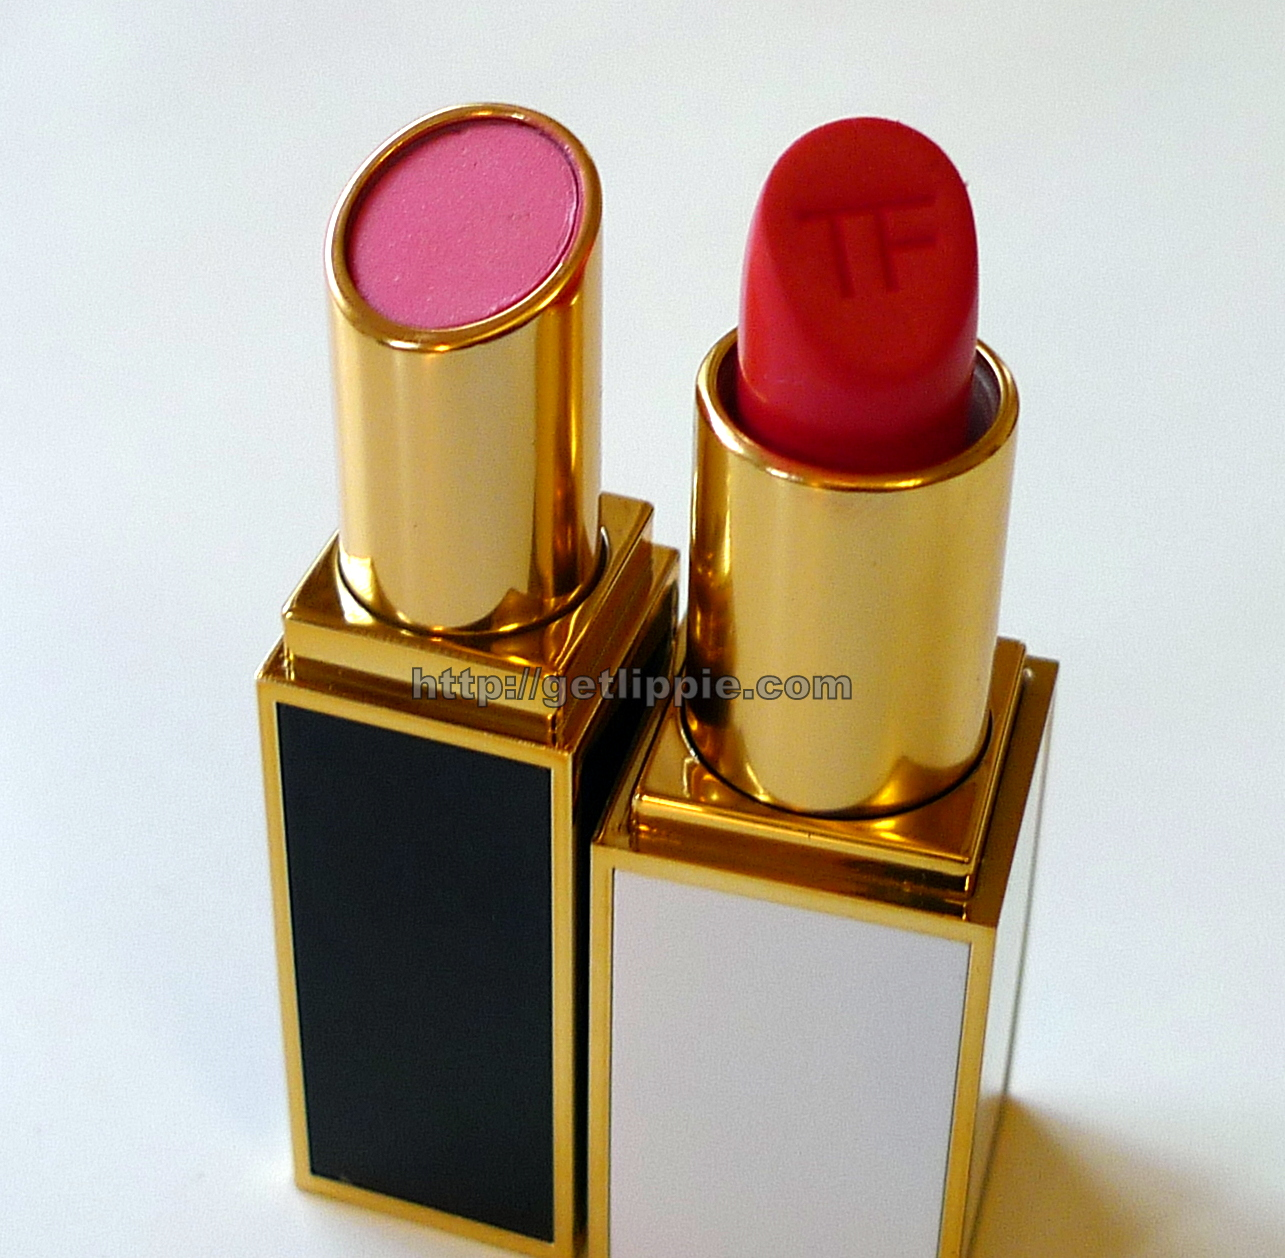 tom ford lip colour shine quiver get lippie. Black Bedroom Furniture Sets. Home Design Ideas